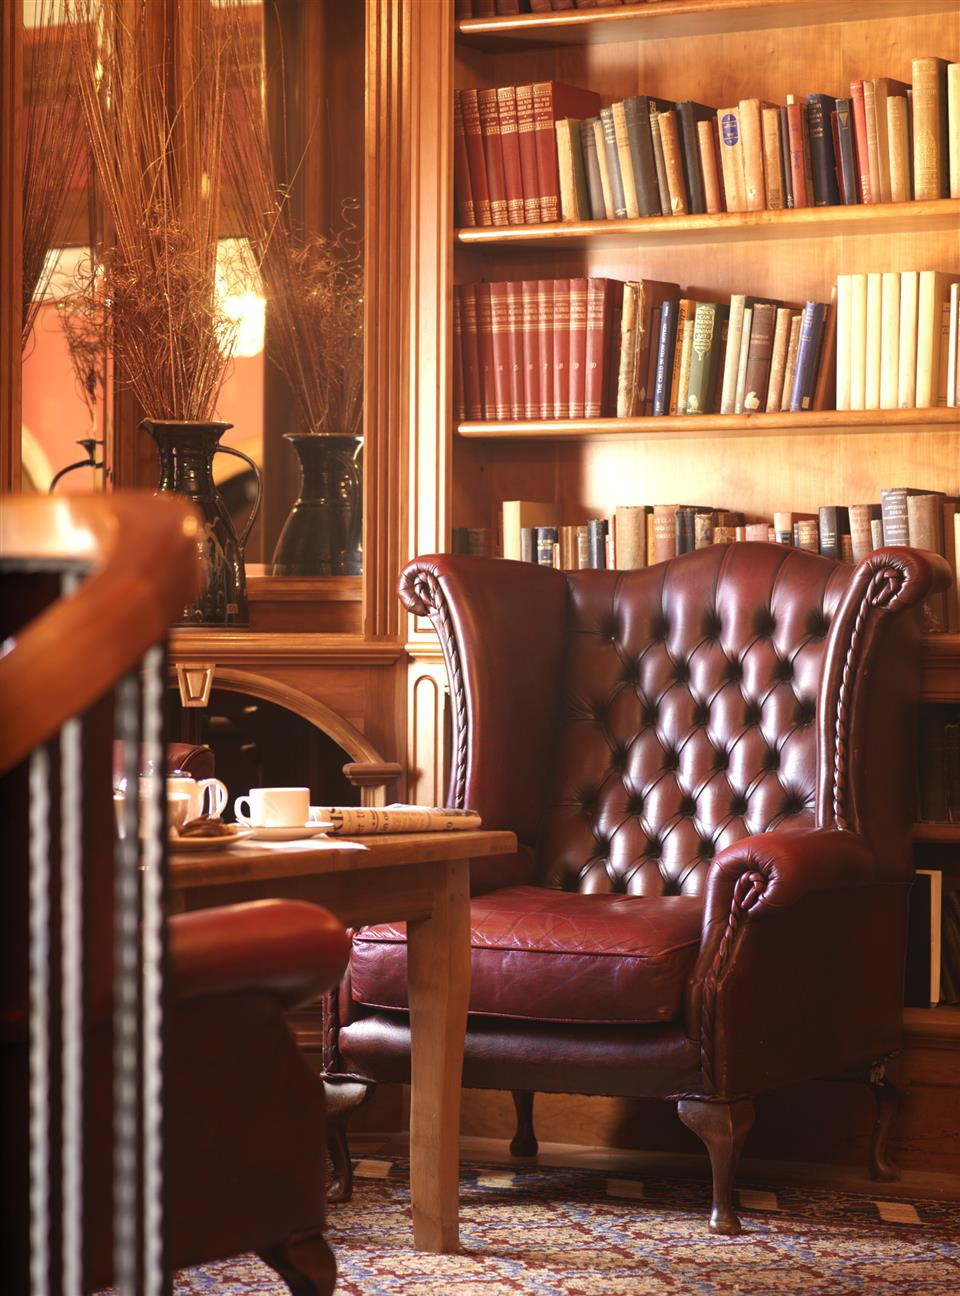 River Island Hotel Library